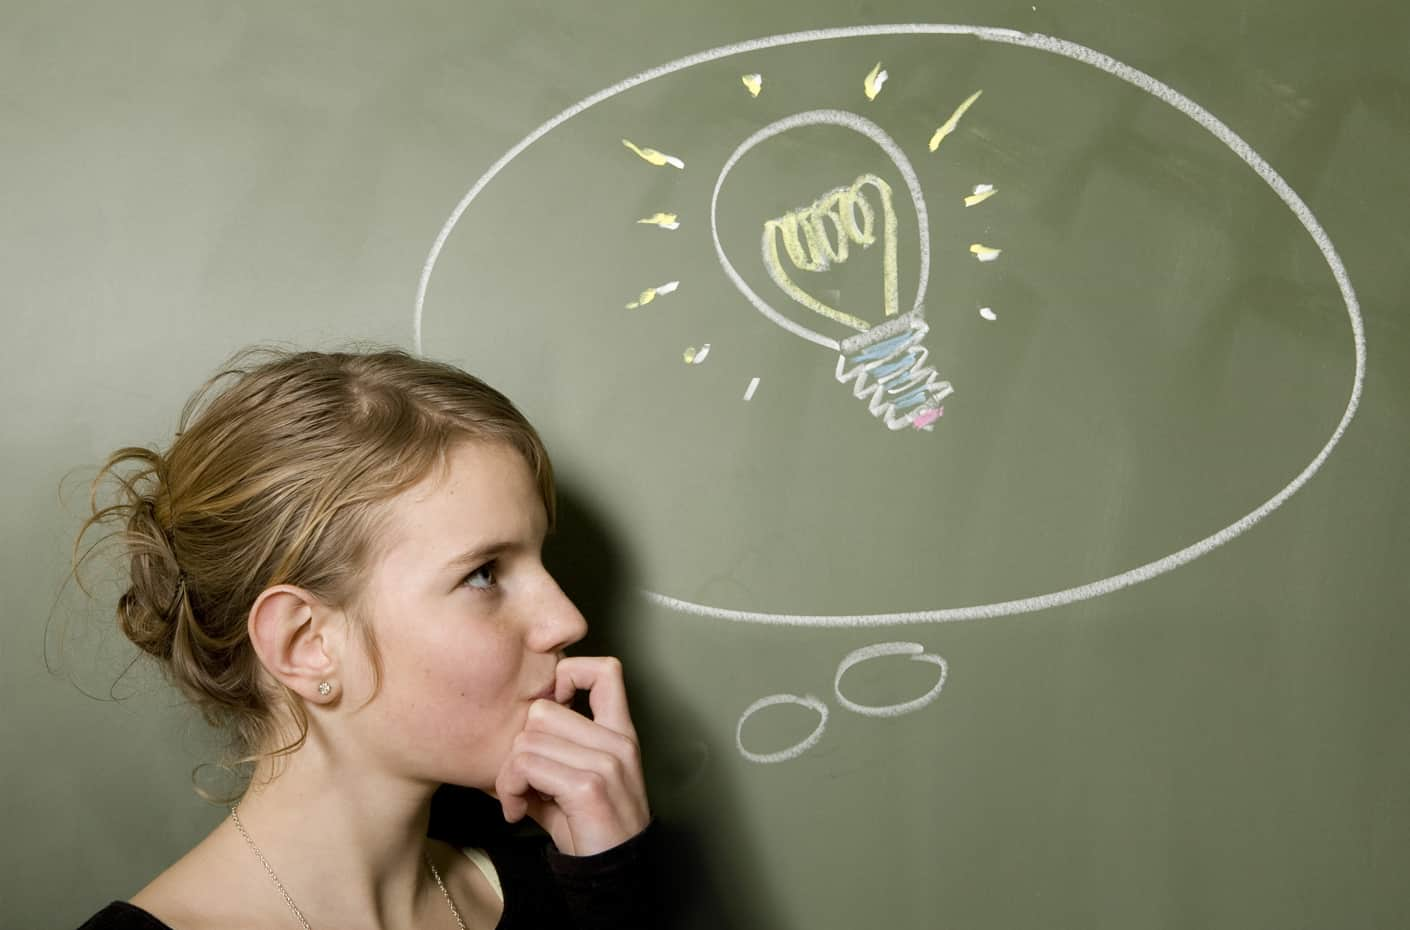 If you are capable of answering a question, here are some of the top answer and question sites for making money online